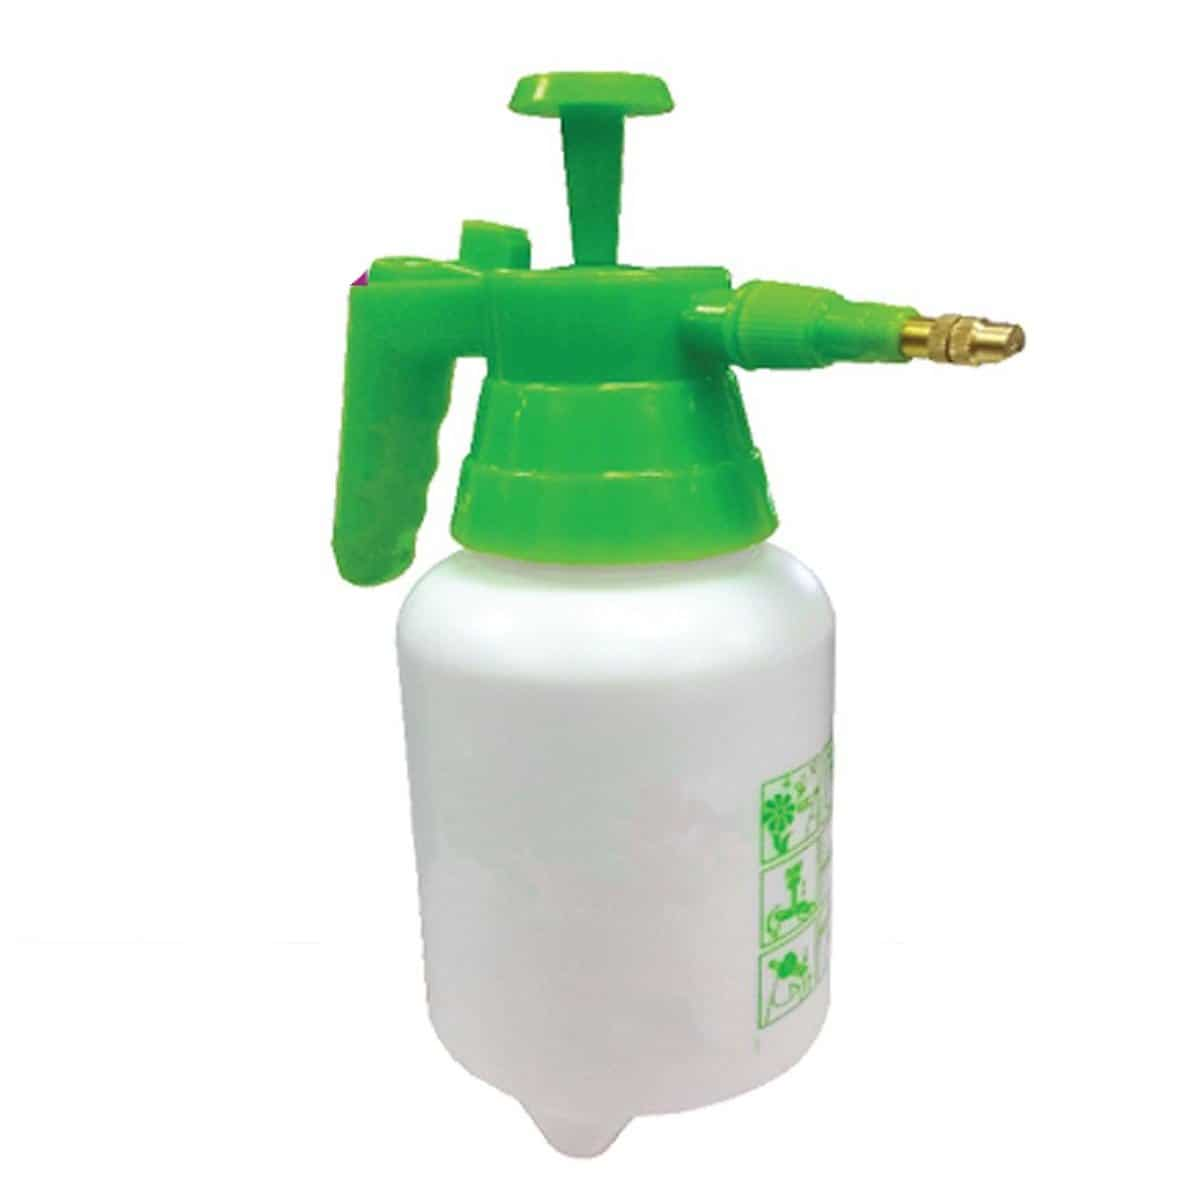 ANEKA 1L Pressure Sprayer Manual Pump Hand Held Garden Pump 1000ml